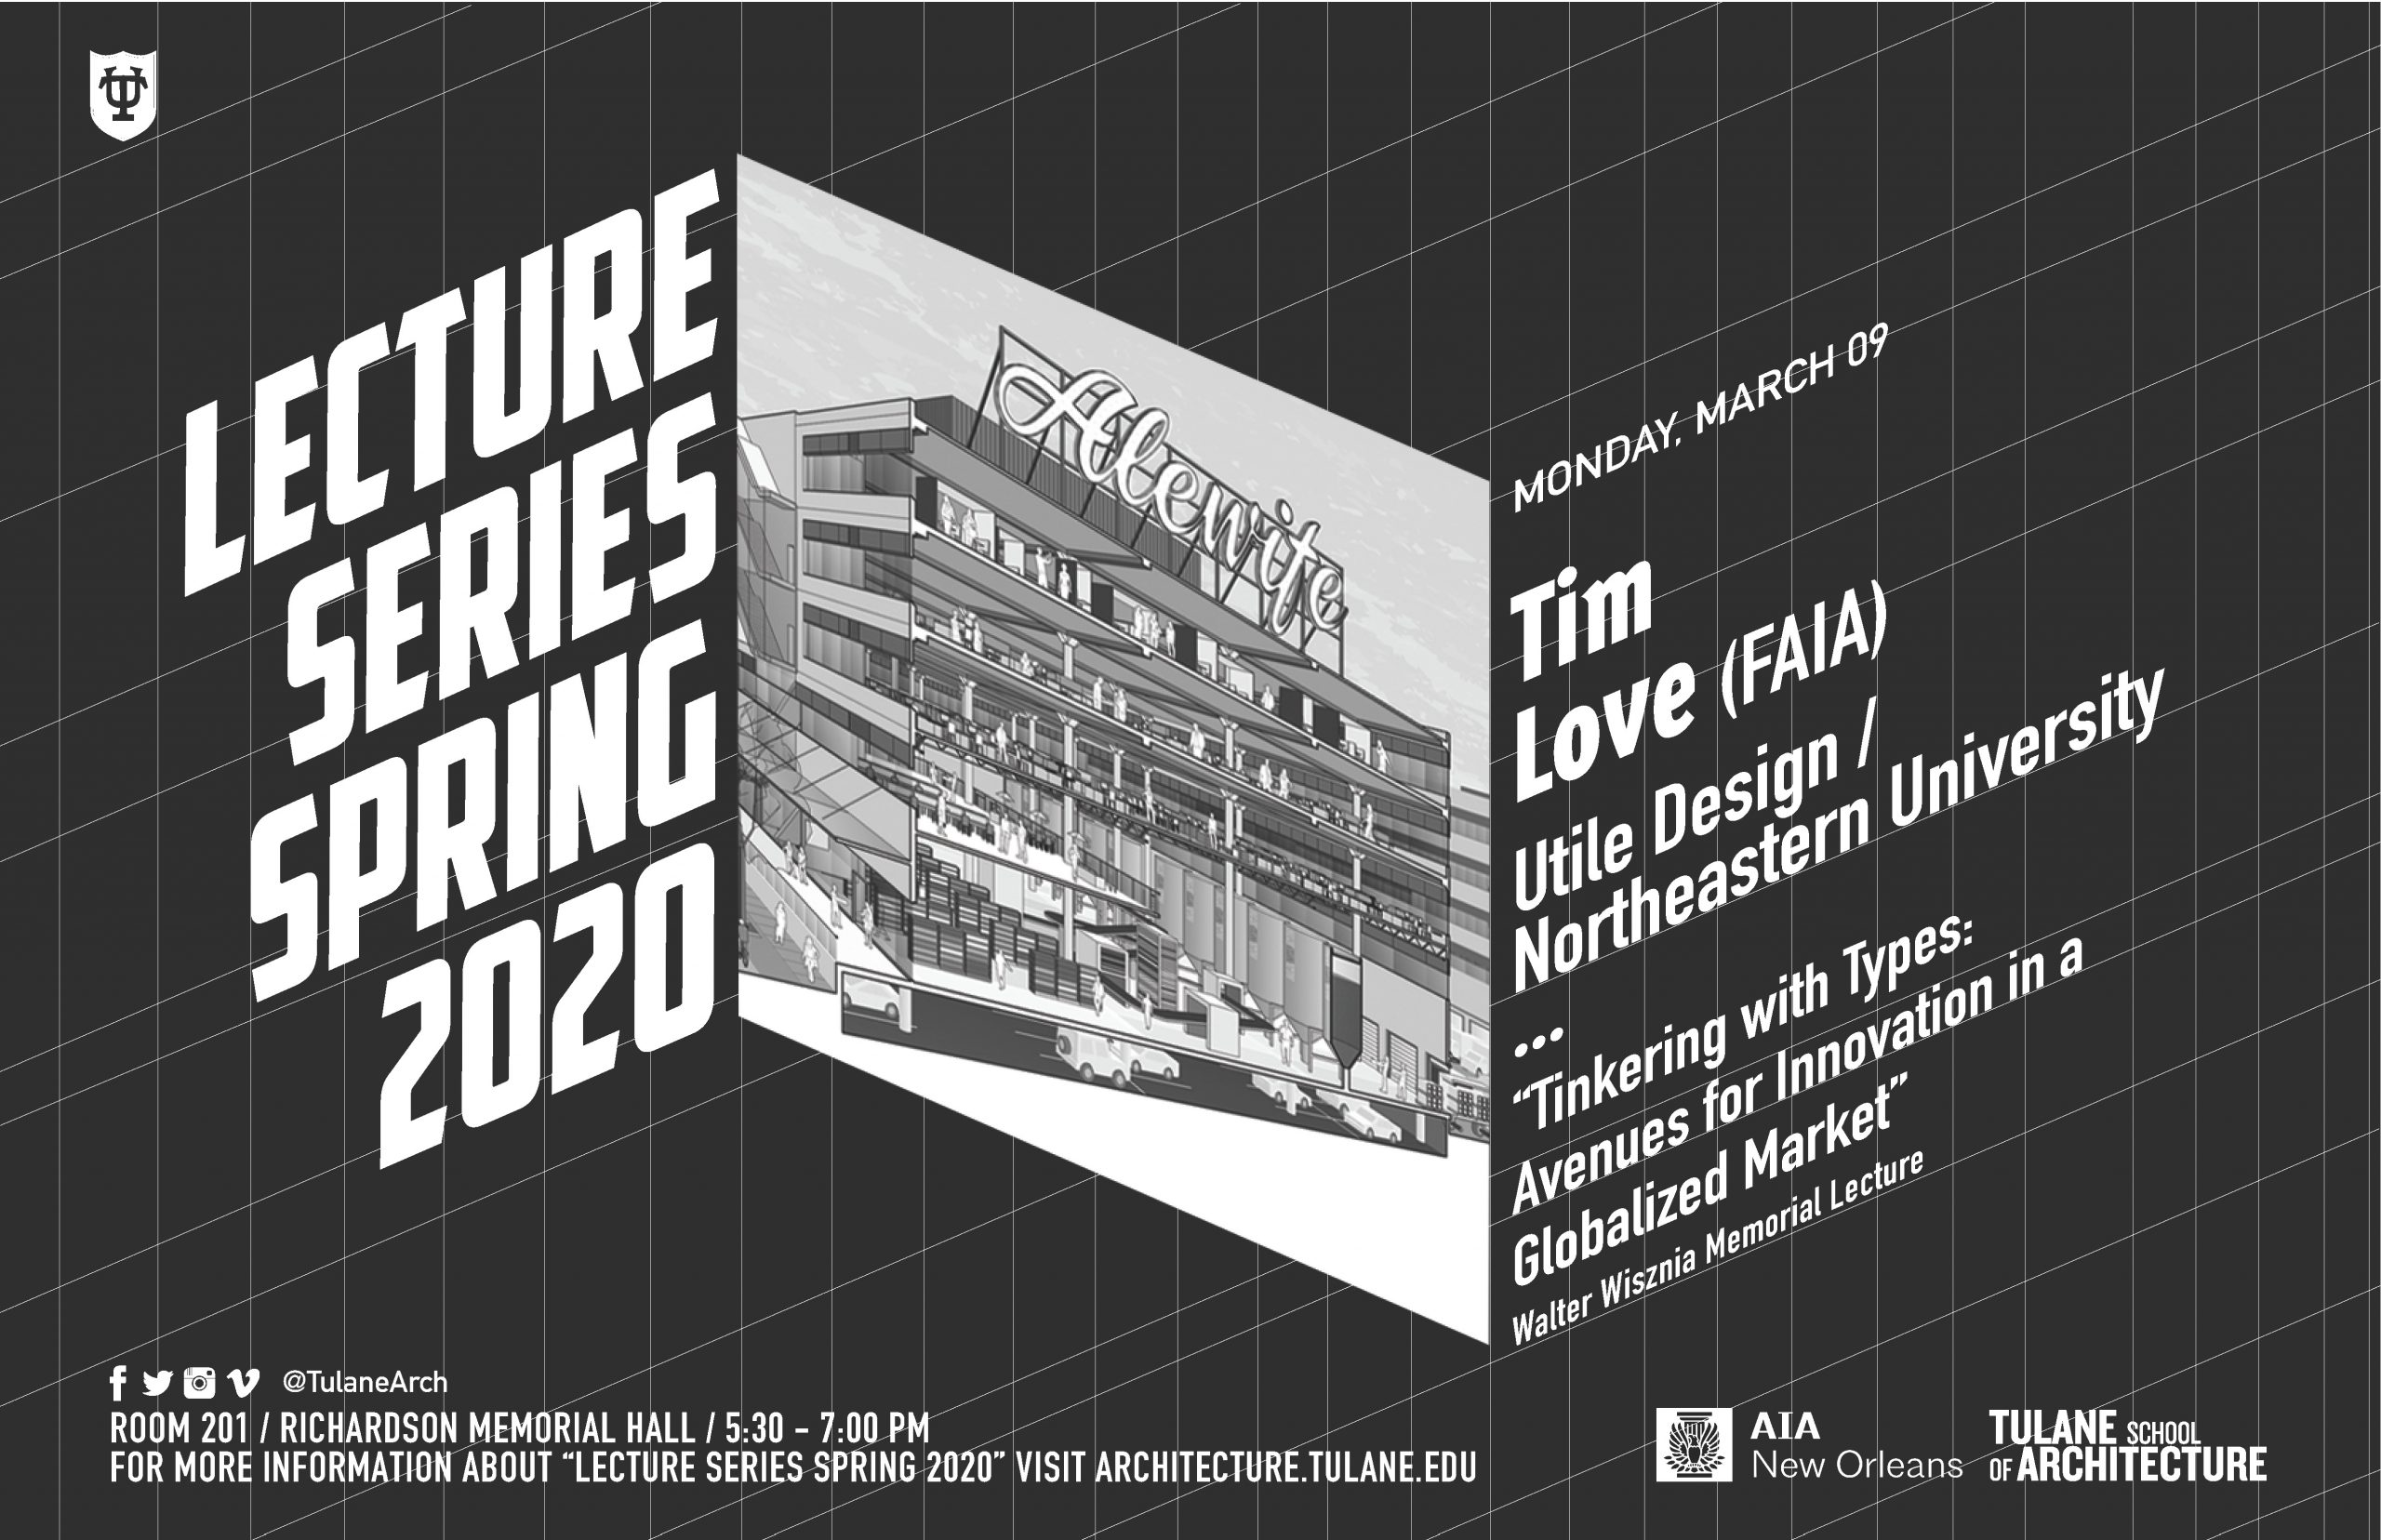 Tim Love to lecture at Tulane School of Architecture